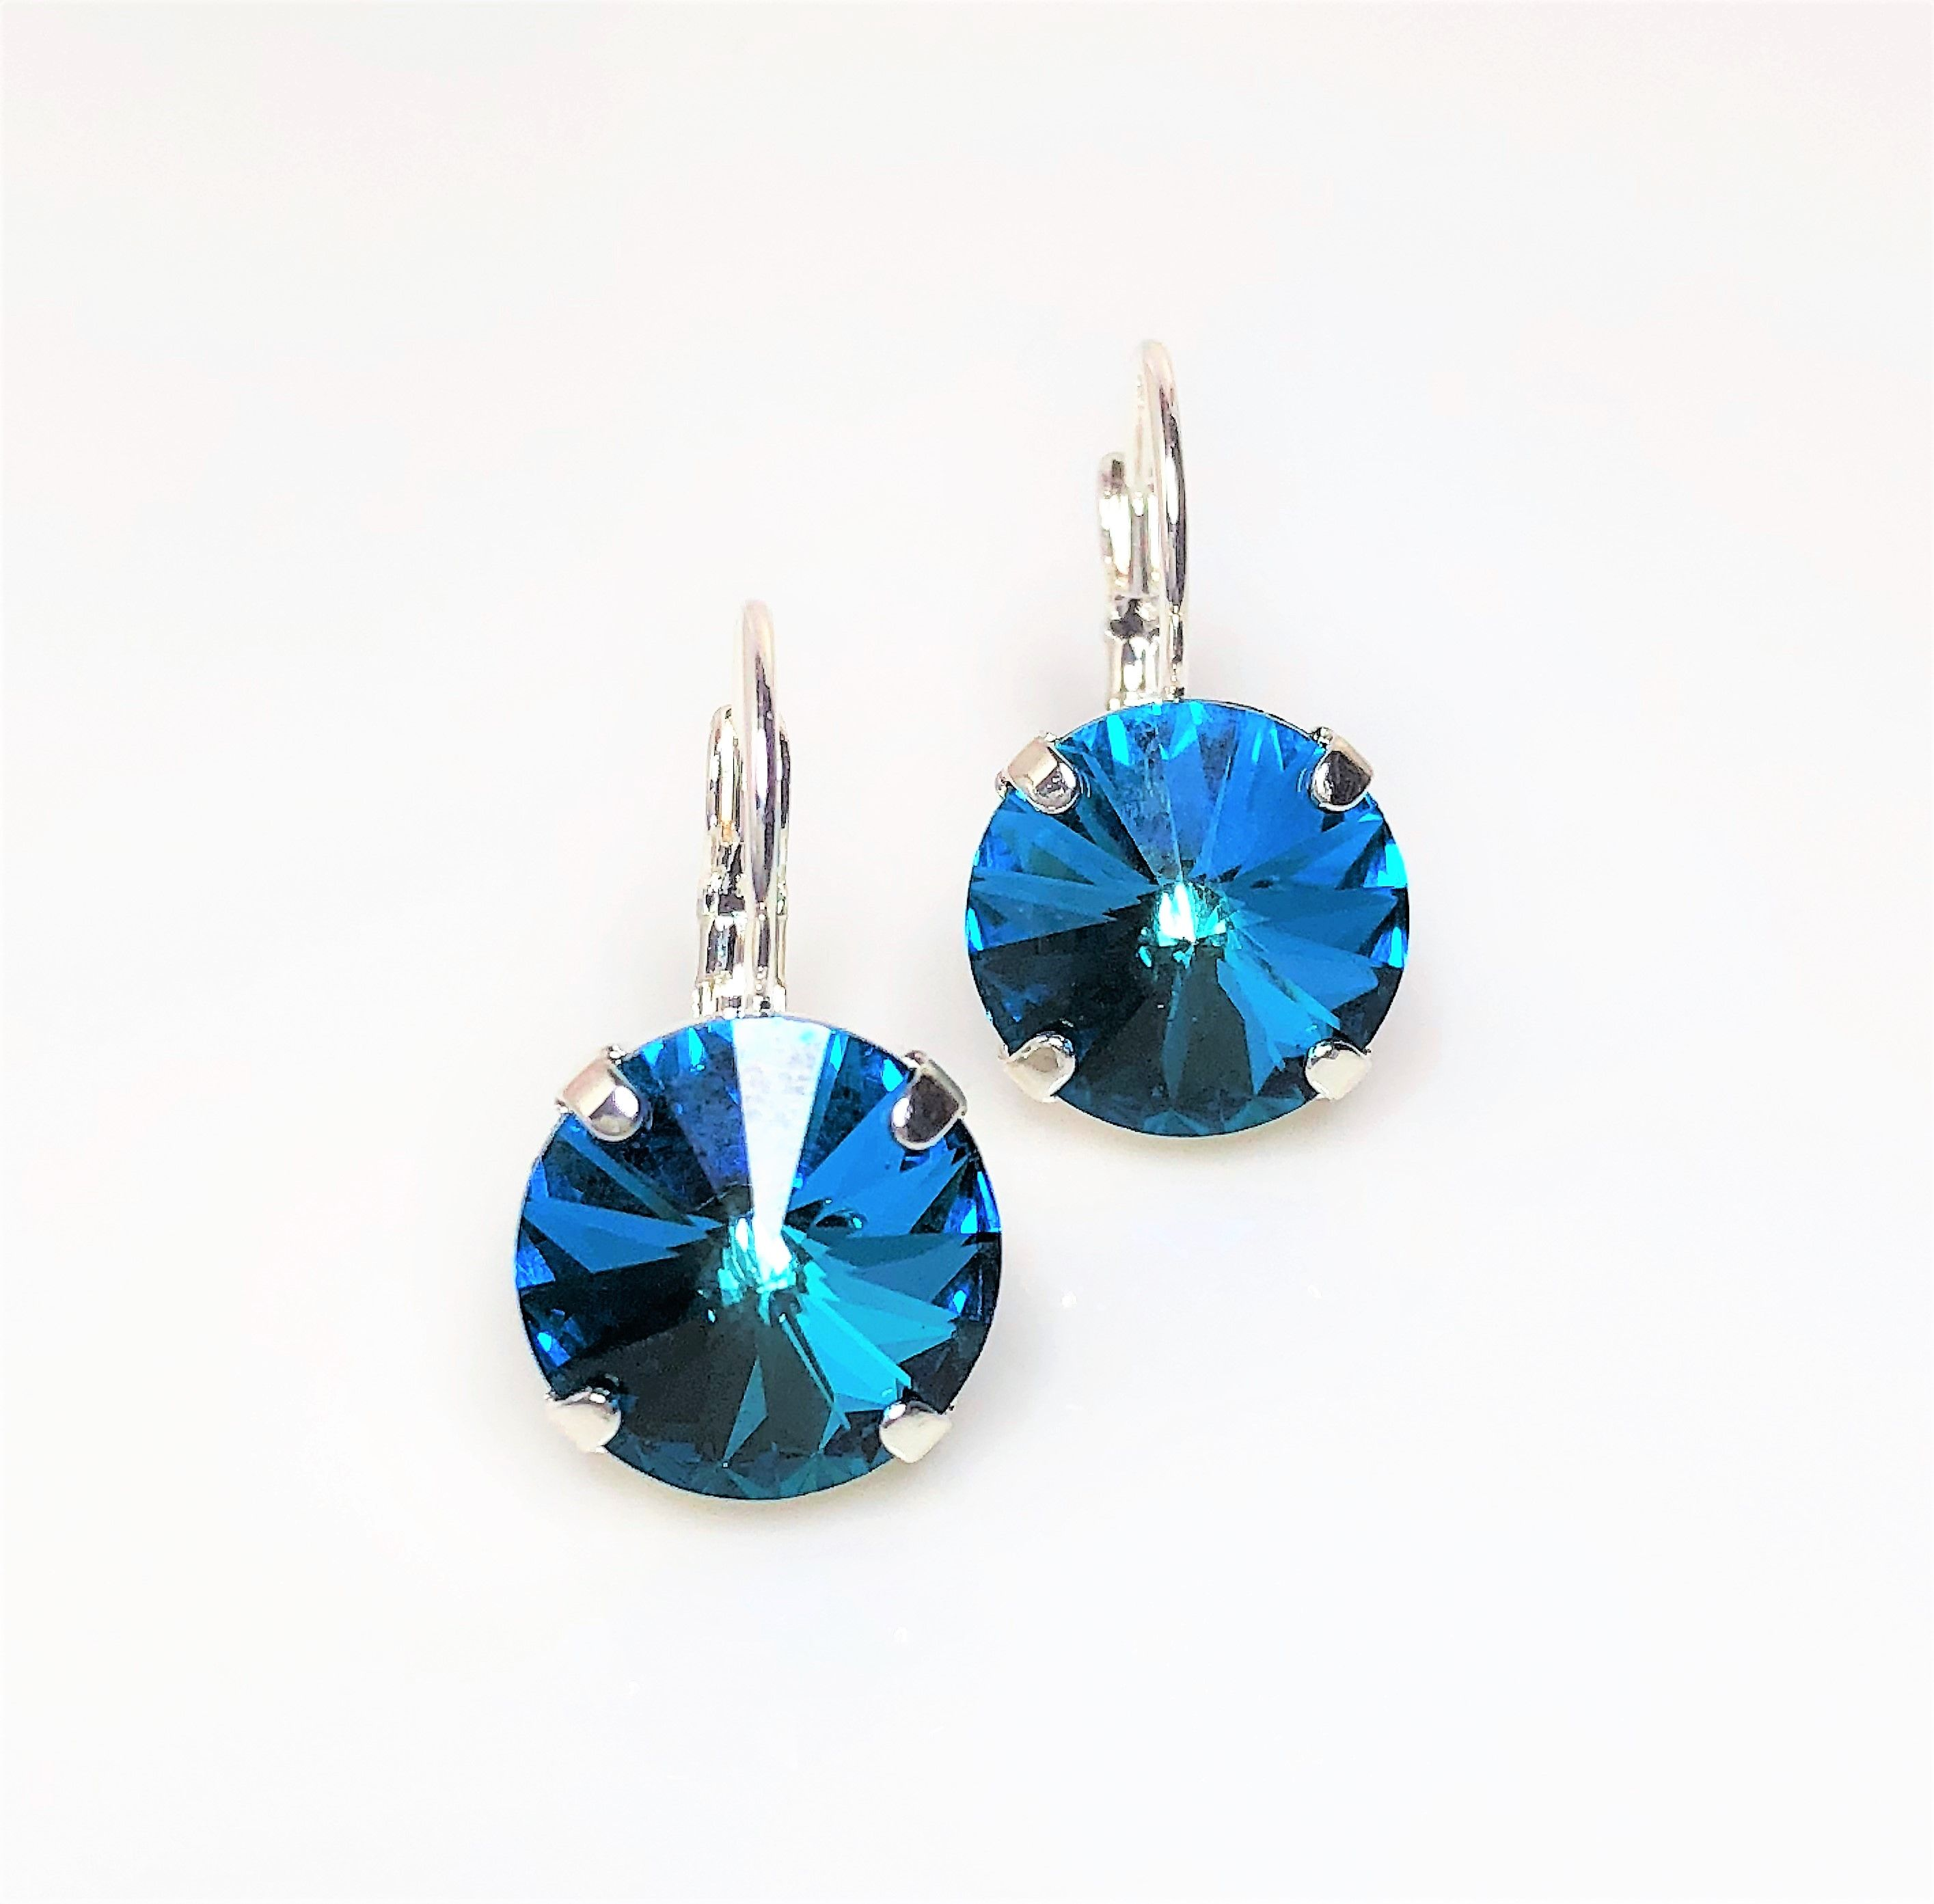 Blue Swarovski Stud Earrings Uk in 2020 Blue crystal